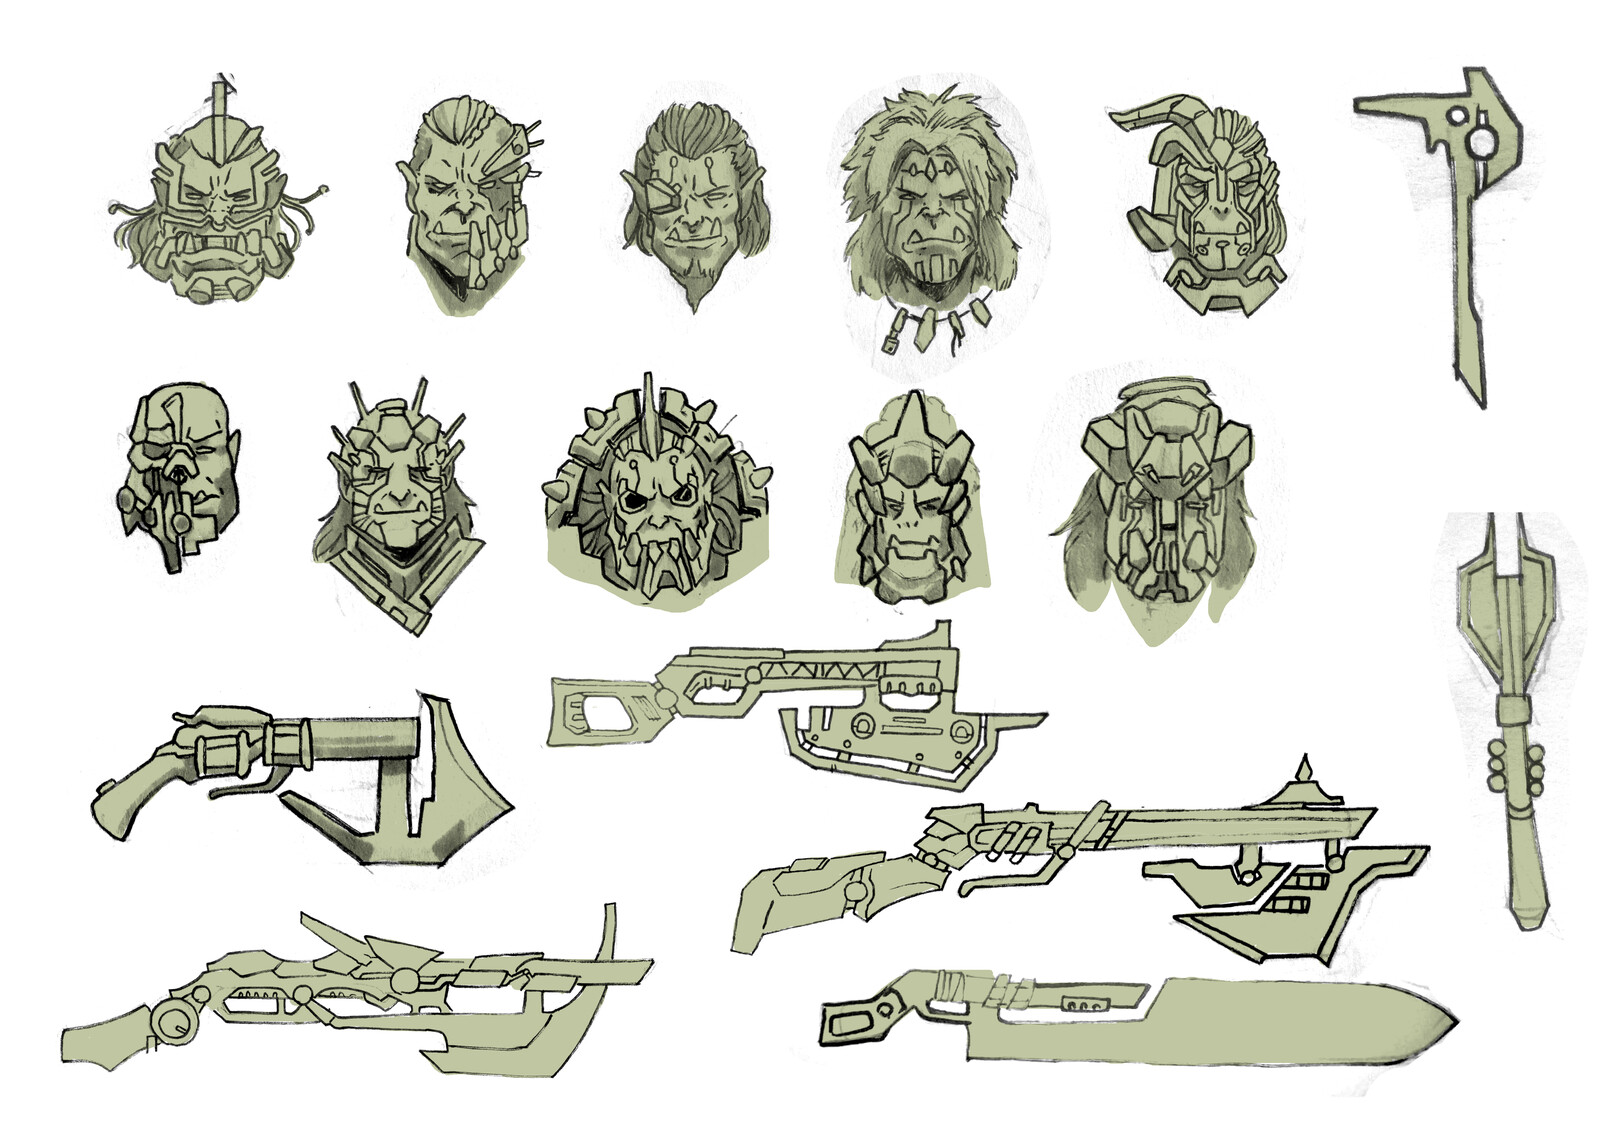 First faces and weapons.